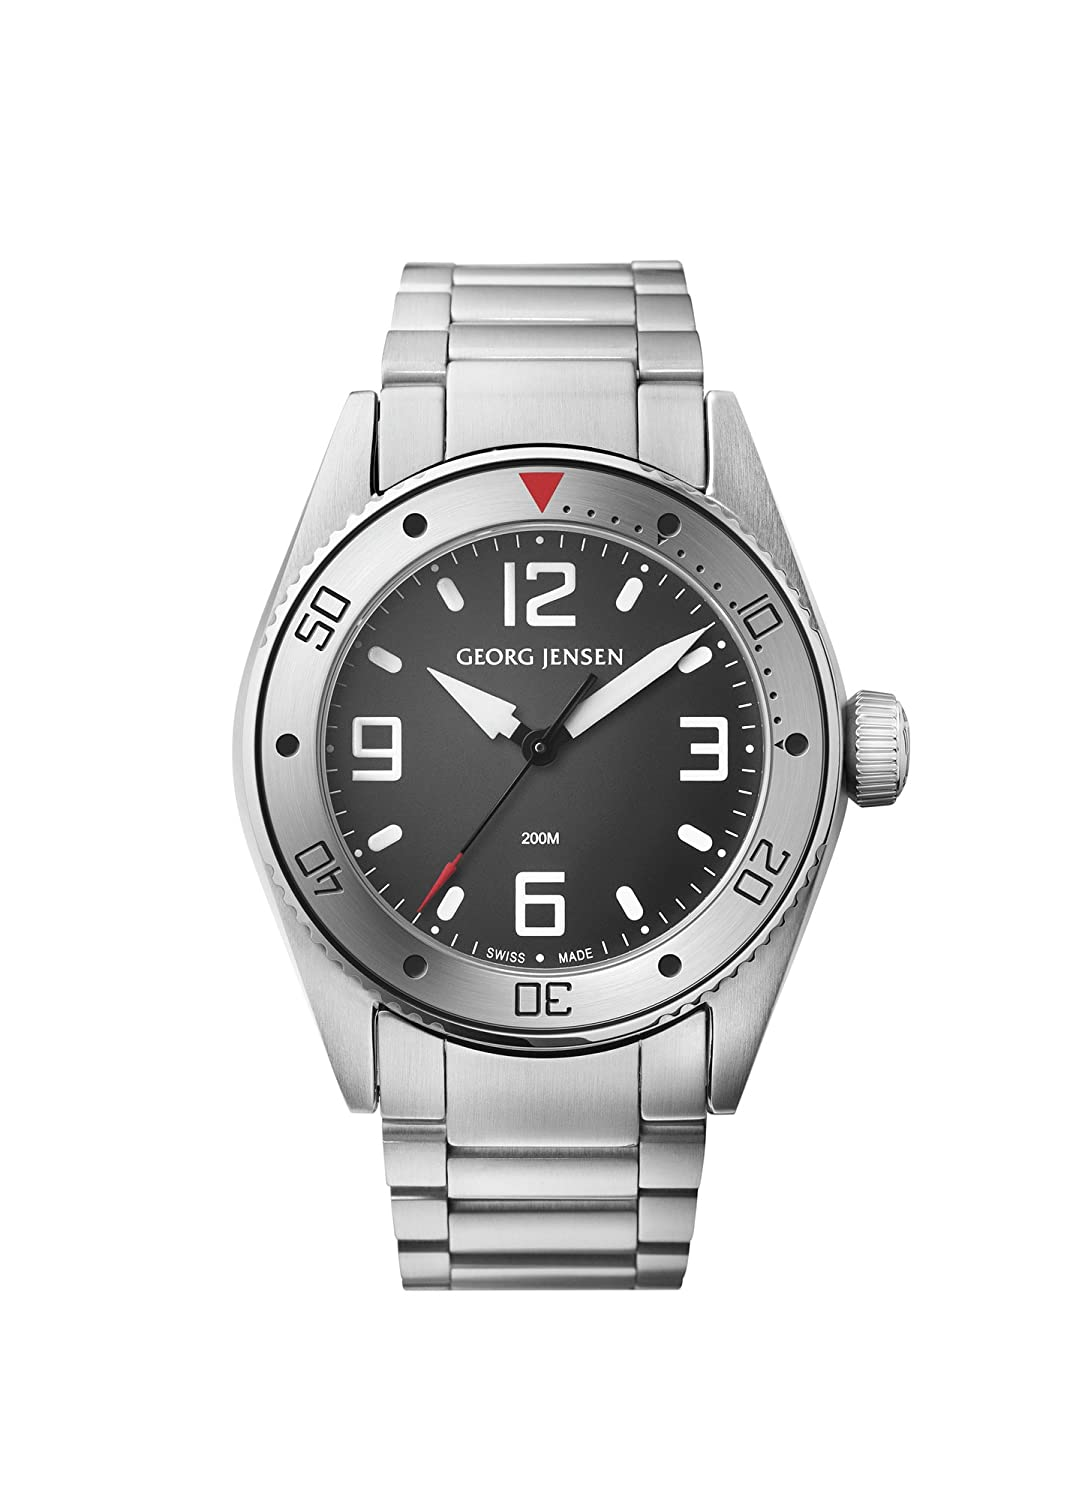 Georg Jensen Herrenuhr der Superlative GMT Nummer 3575603 Delta Dive 42mm *UVP €950